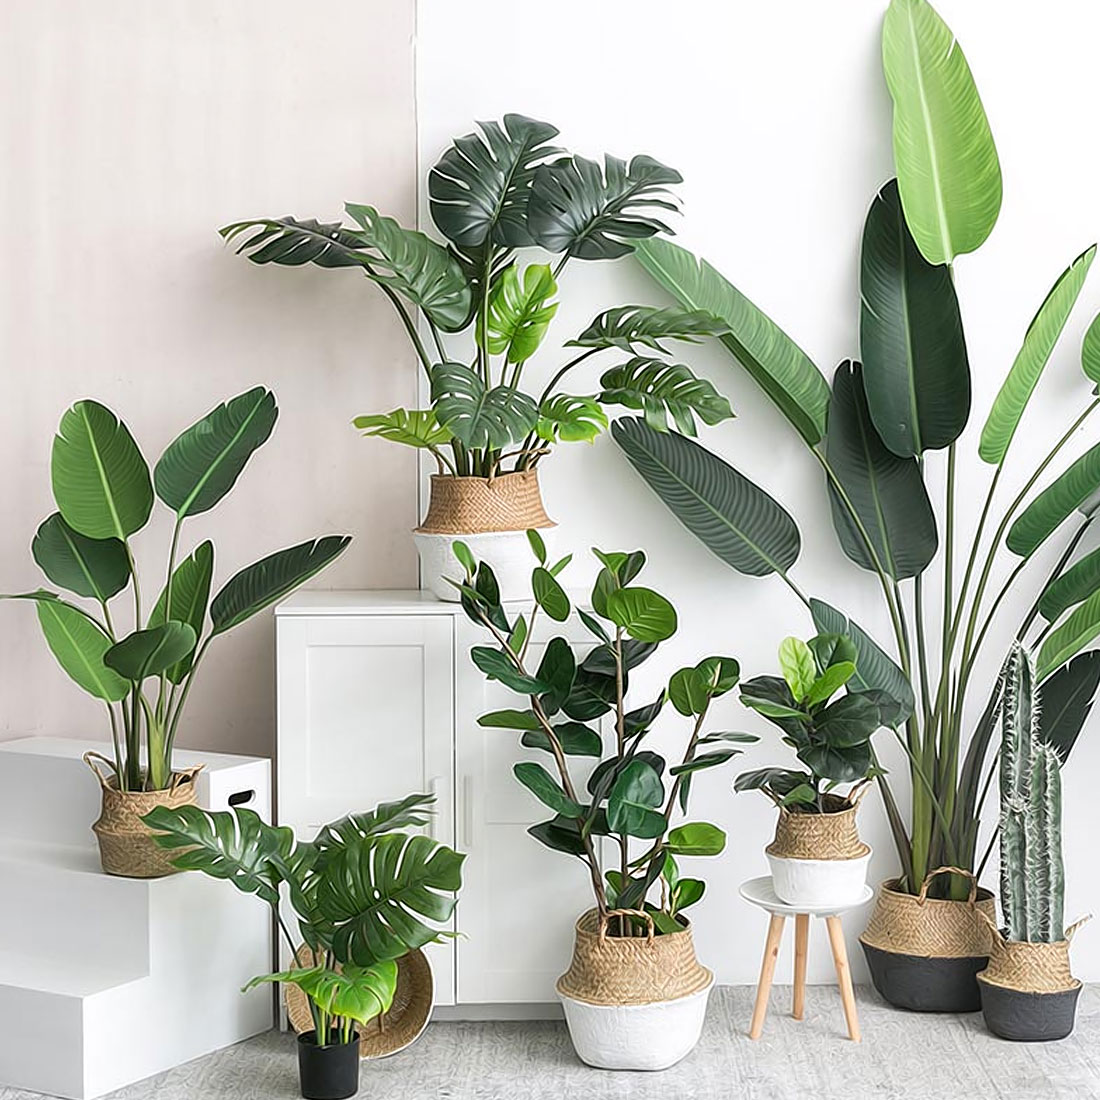 Home Decor Plants Artificial Plants Green Turtle Leaves Garden Home Decor 1